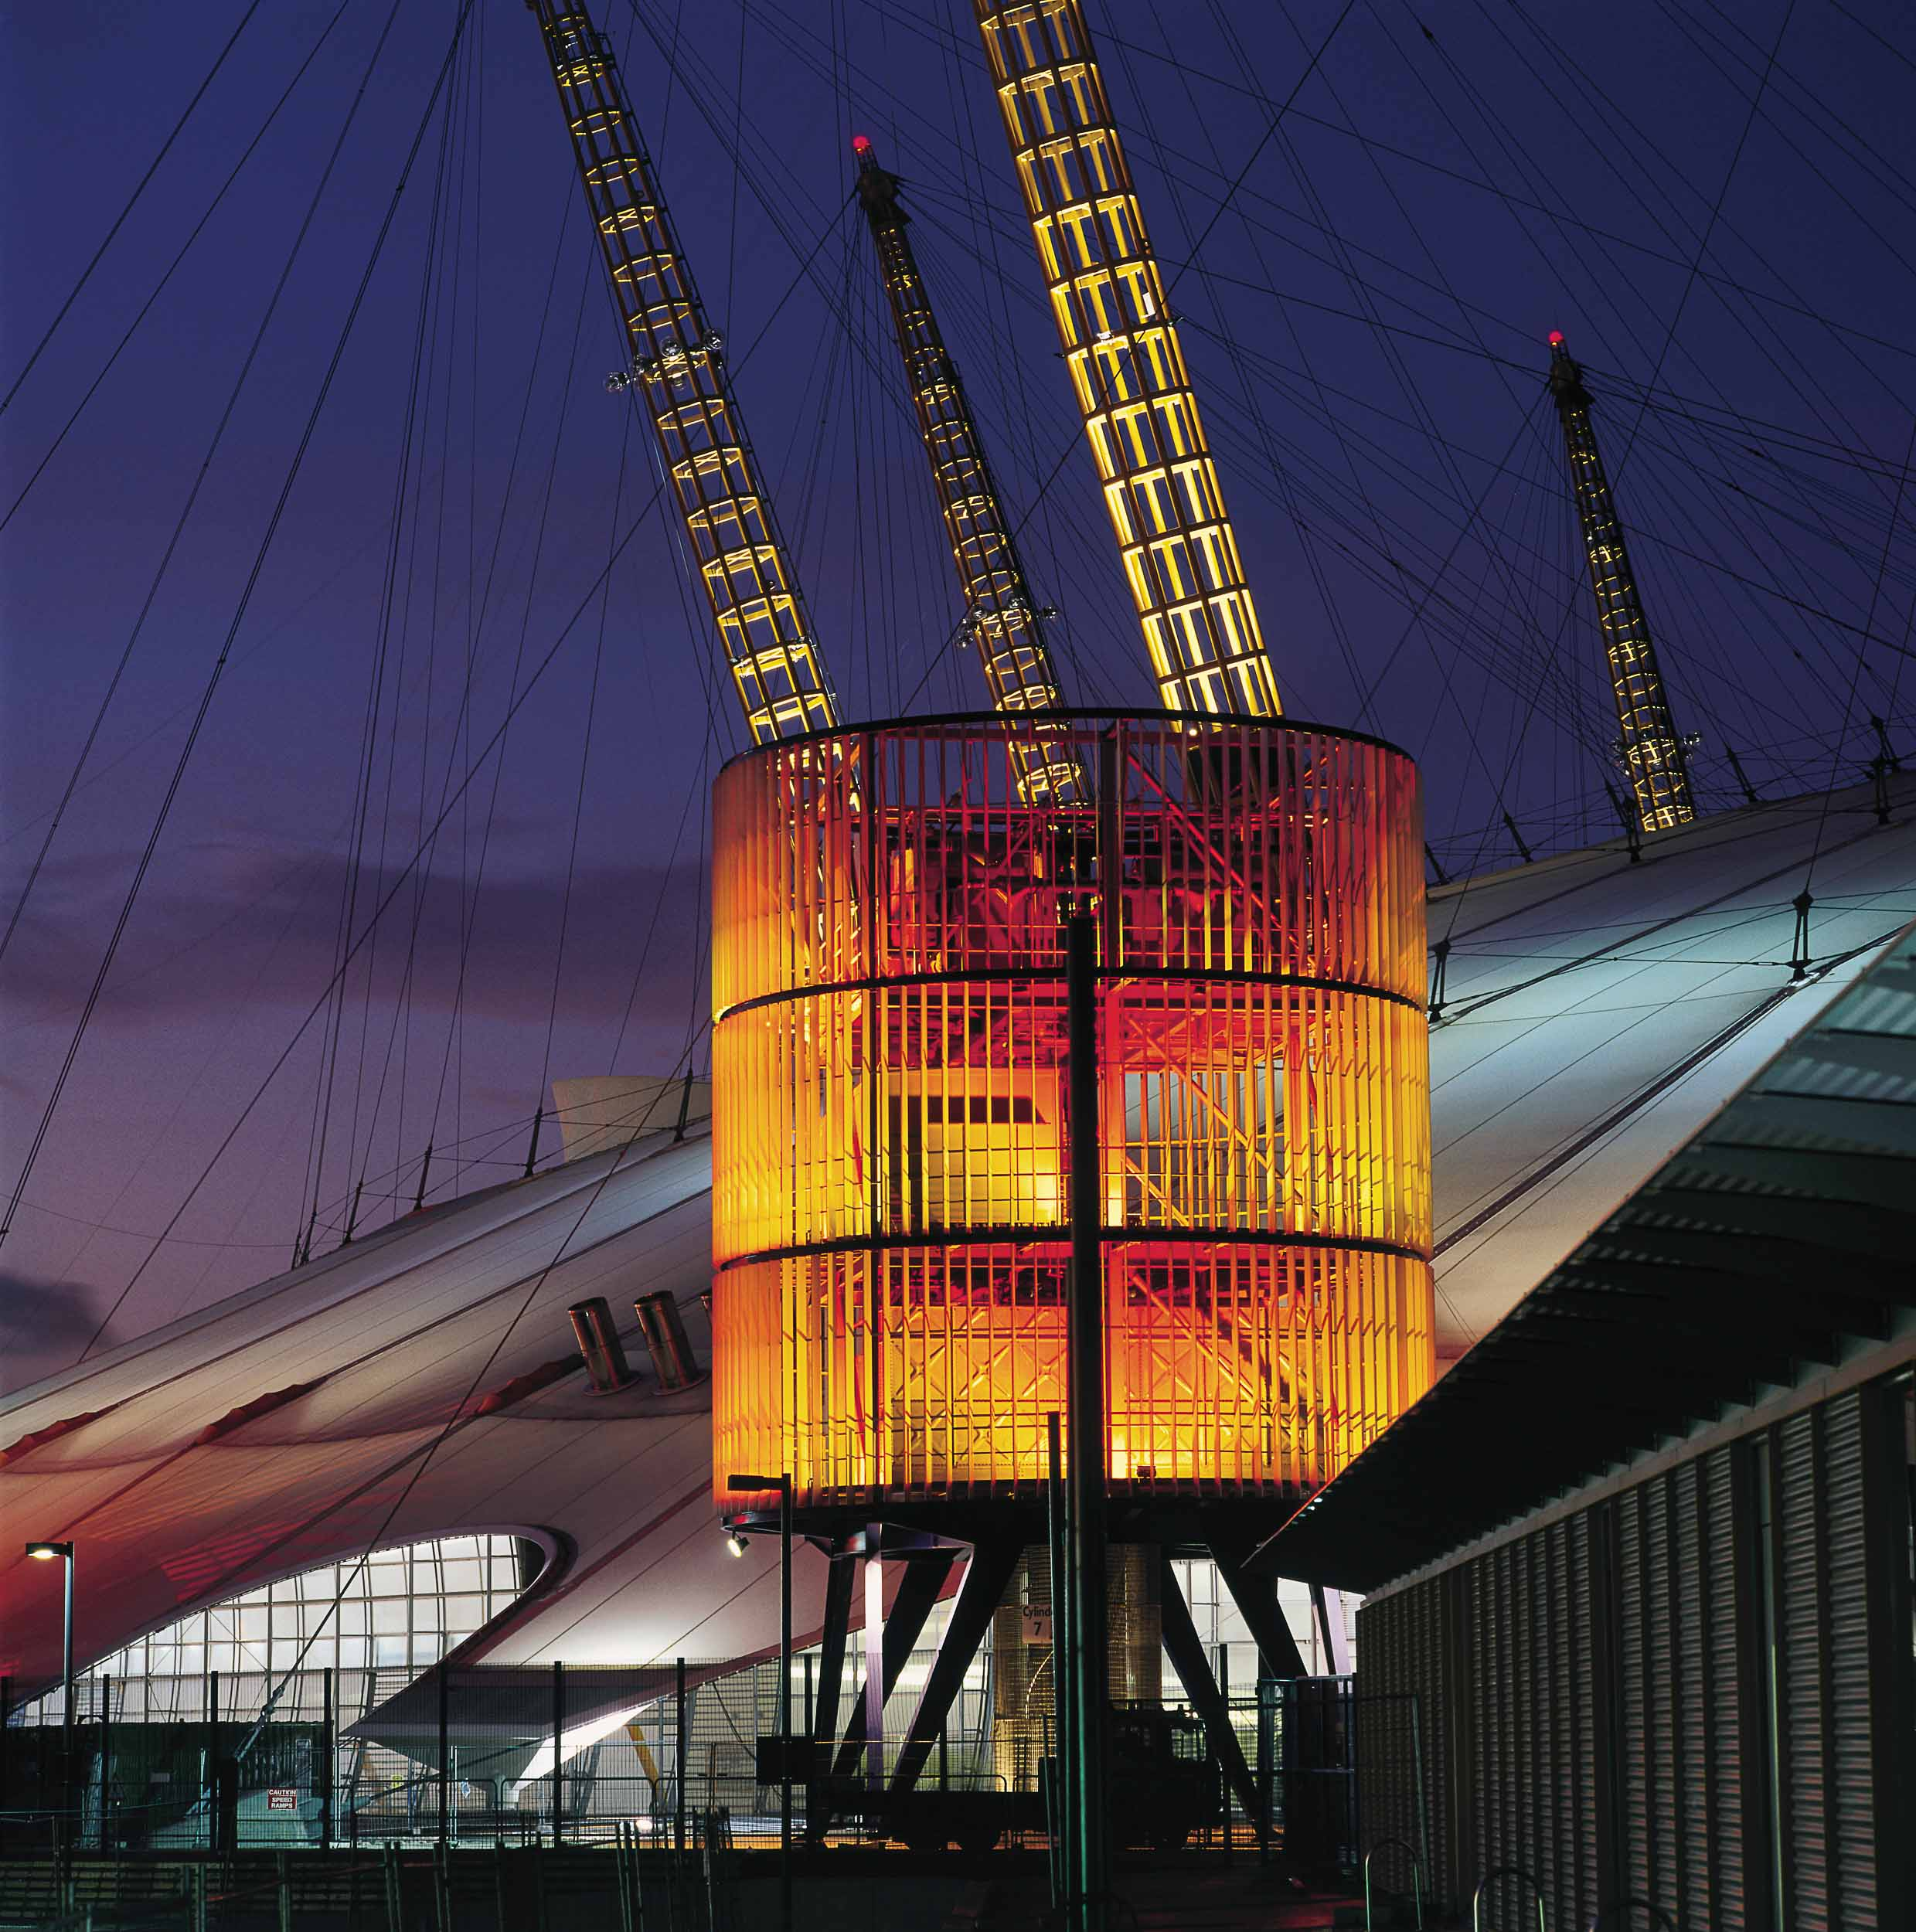 Stuart Forbes was the Project Architect for the Millennium Dome whilst at Rogers Stirk Harbour + Partners.